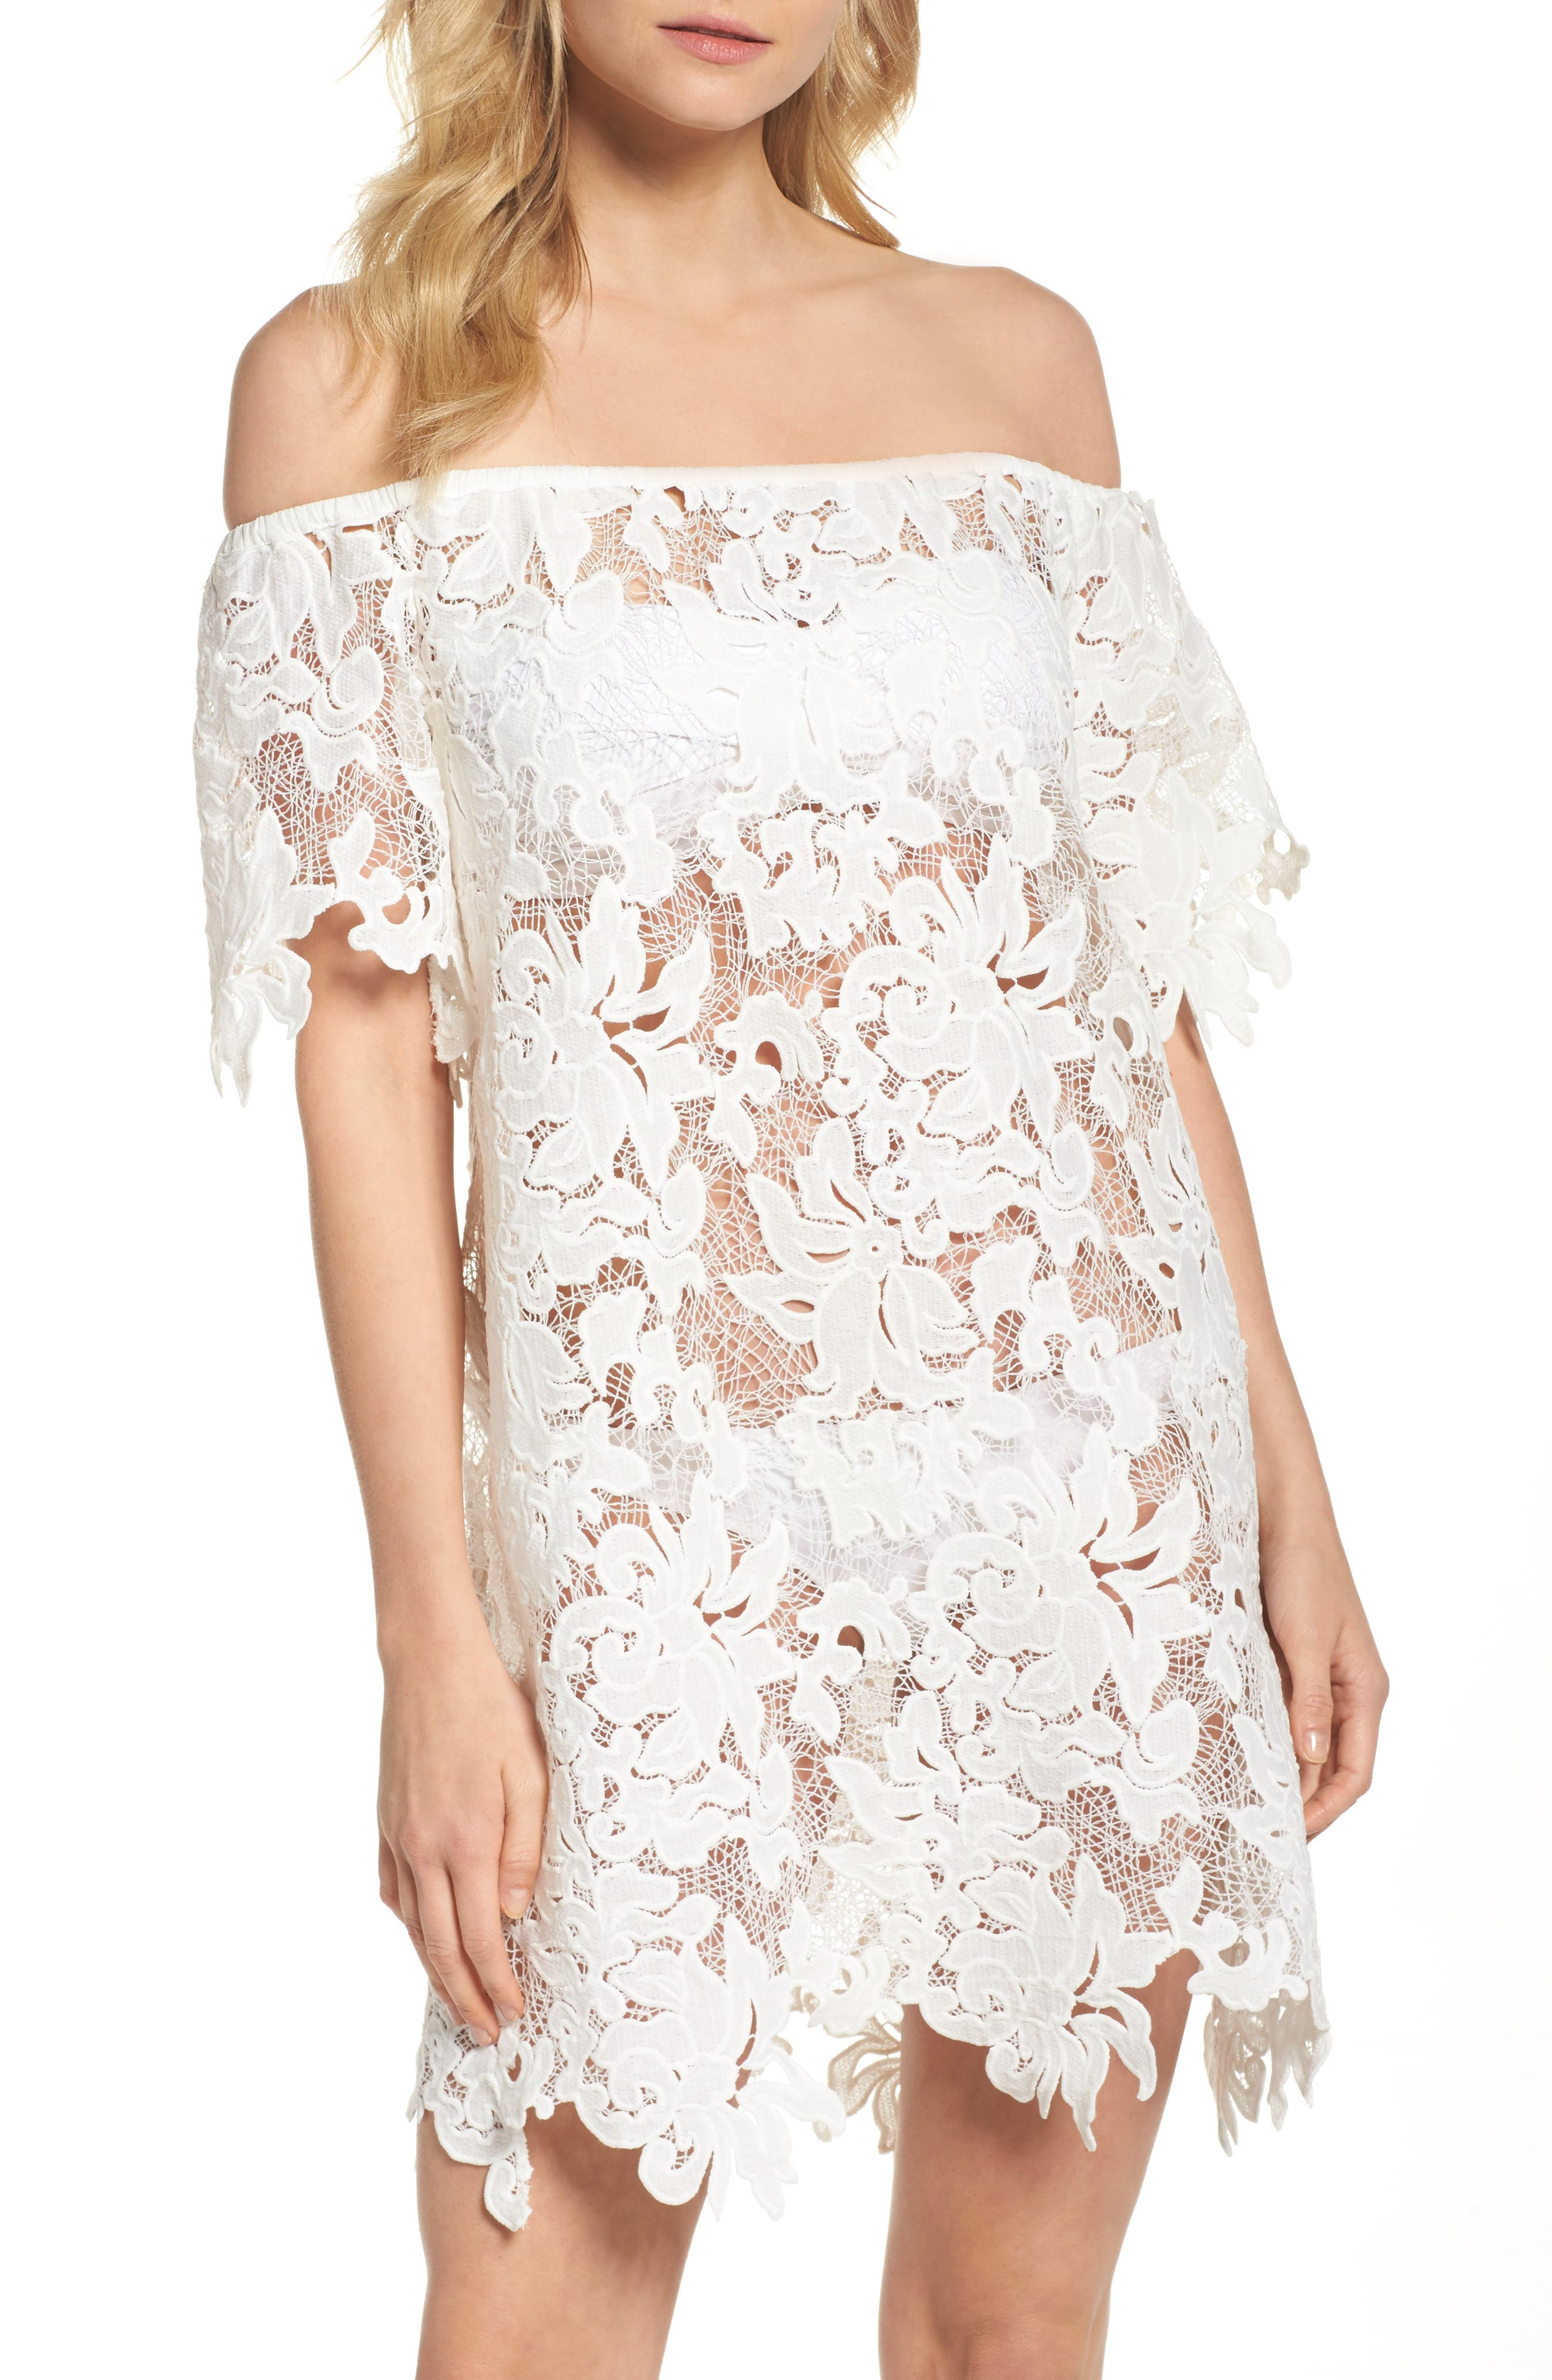 Ode Rosette Lace Cover-Up Dress,                             Main thumbnail 1, color,                             100